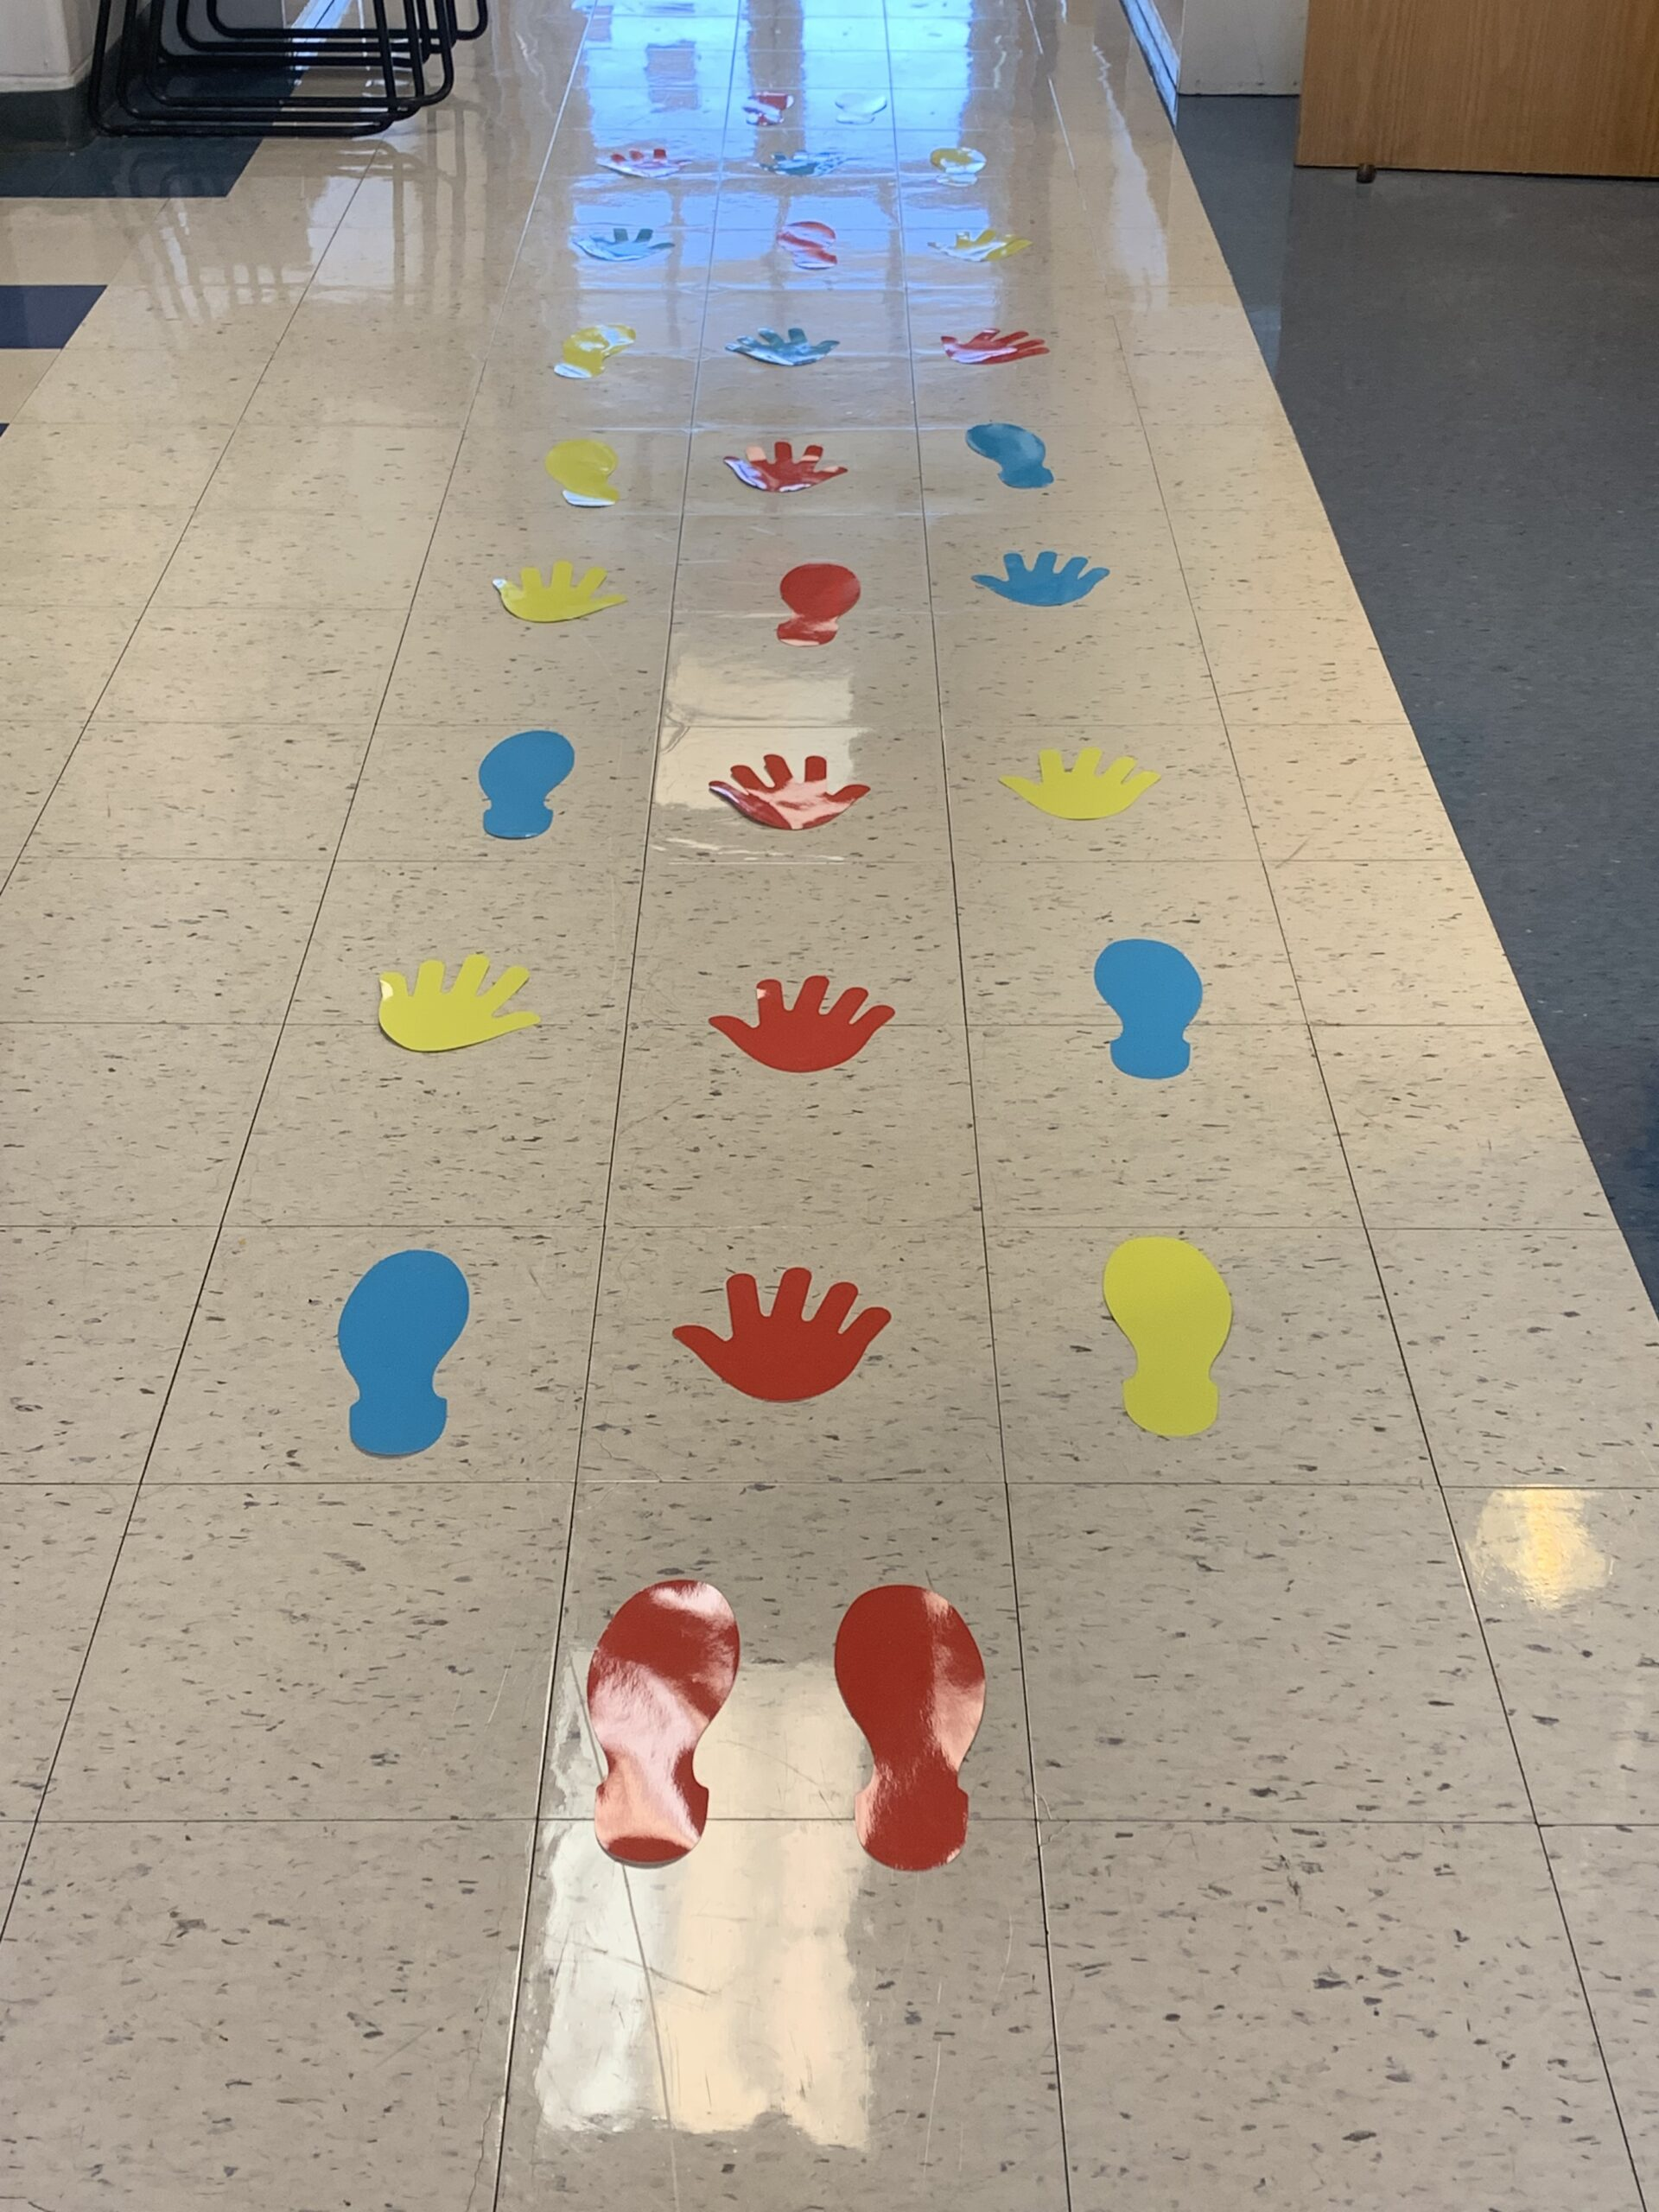 hand and footbprints create a sensory pathway in the hall at South Elementary